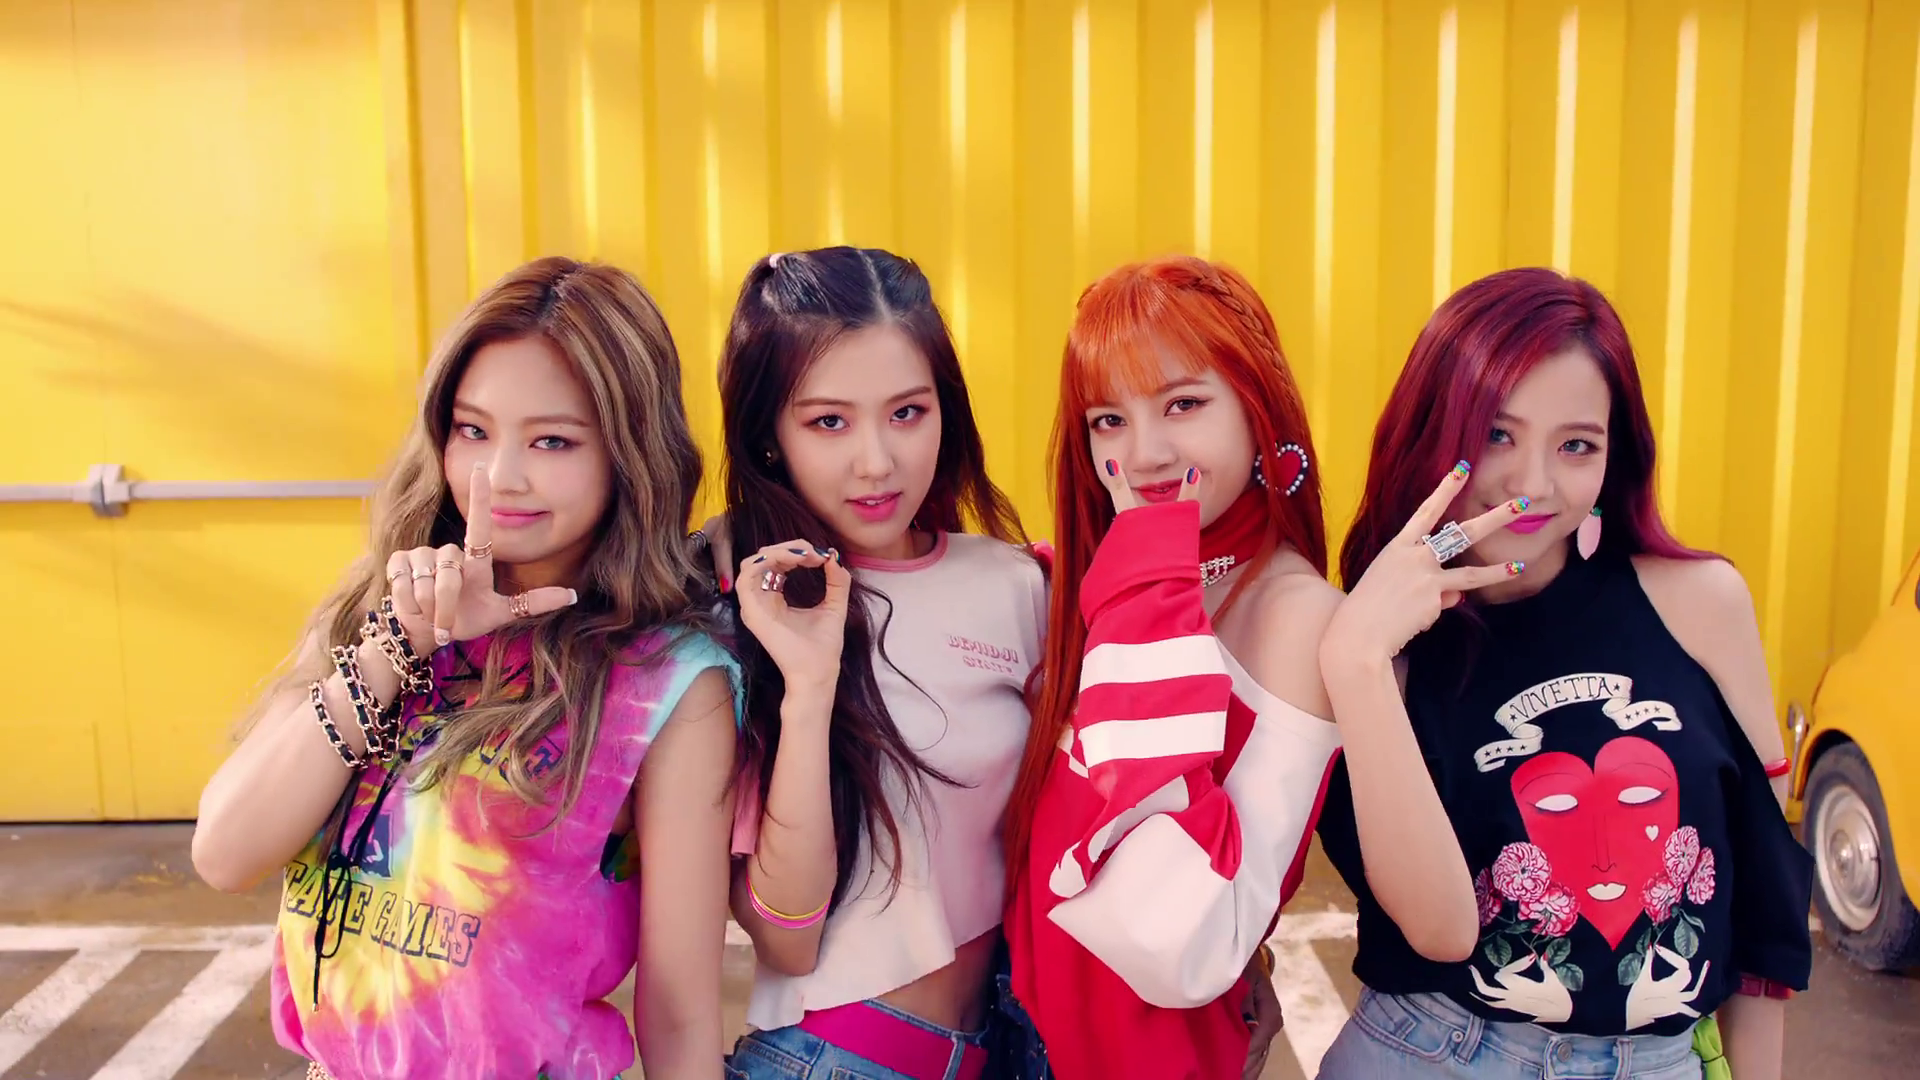 [YG-LIFE] 170627 BLACKPINK Surpassed 30 Million Views Within Shortest-Ever Period of Time for a Korean Idol Group